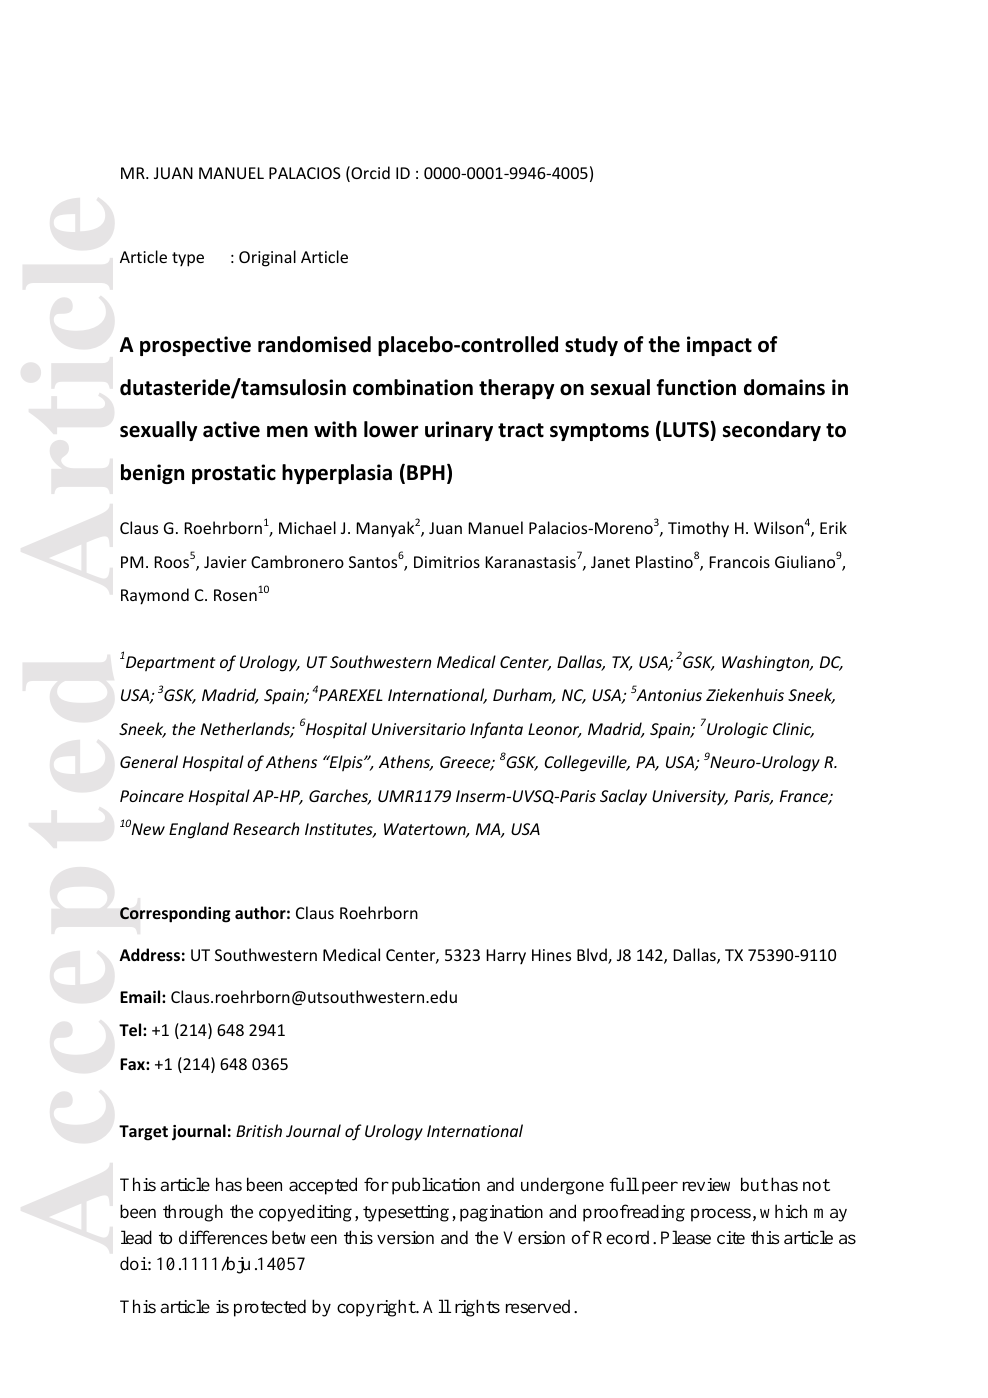 A Prospective Randomised Placebo Controlled Study Of The Impact Of Dutasteride Tamsulosin Combination Therapy On Sexual Function Domains In Sexually Active Men With Lower Urinary Tract Symptoms Luts Secondary To Benign Prostatic Hyperplasia Bph